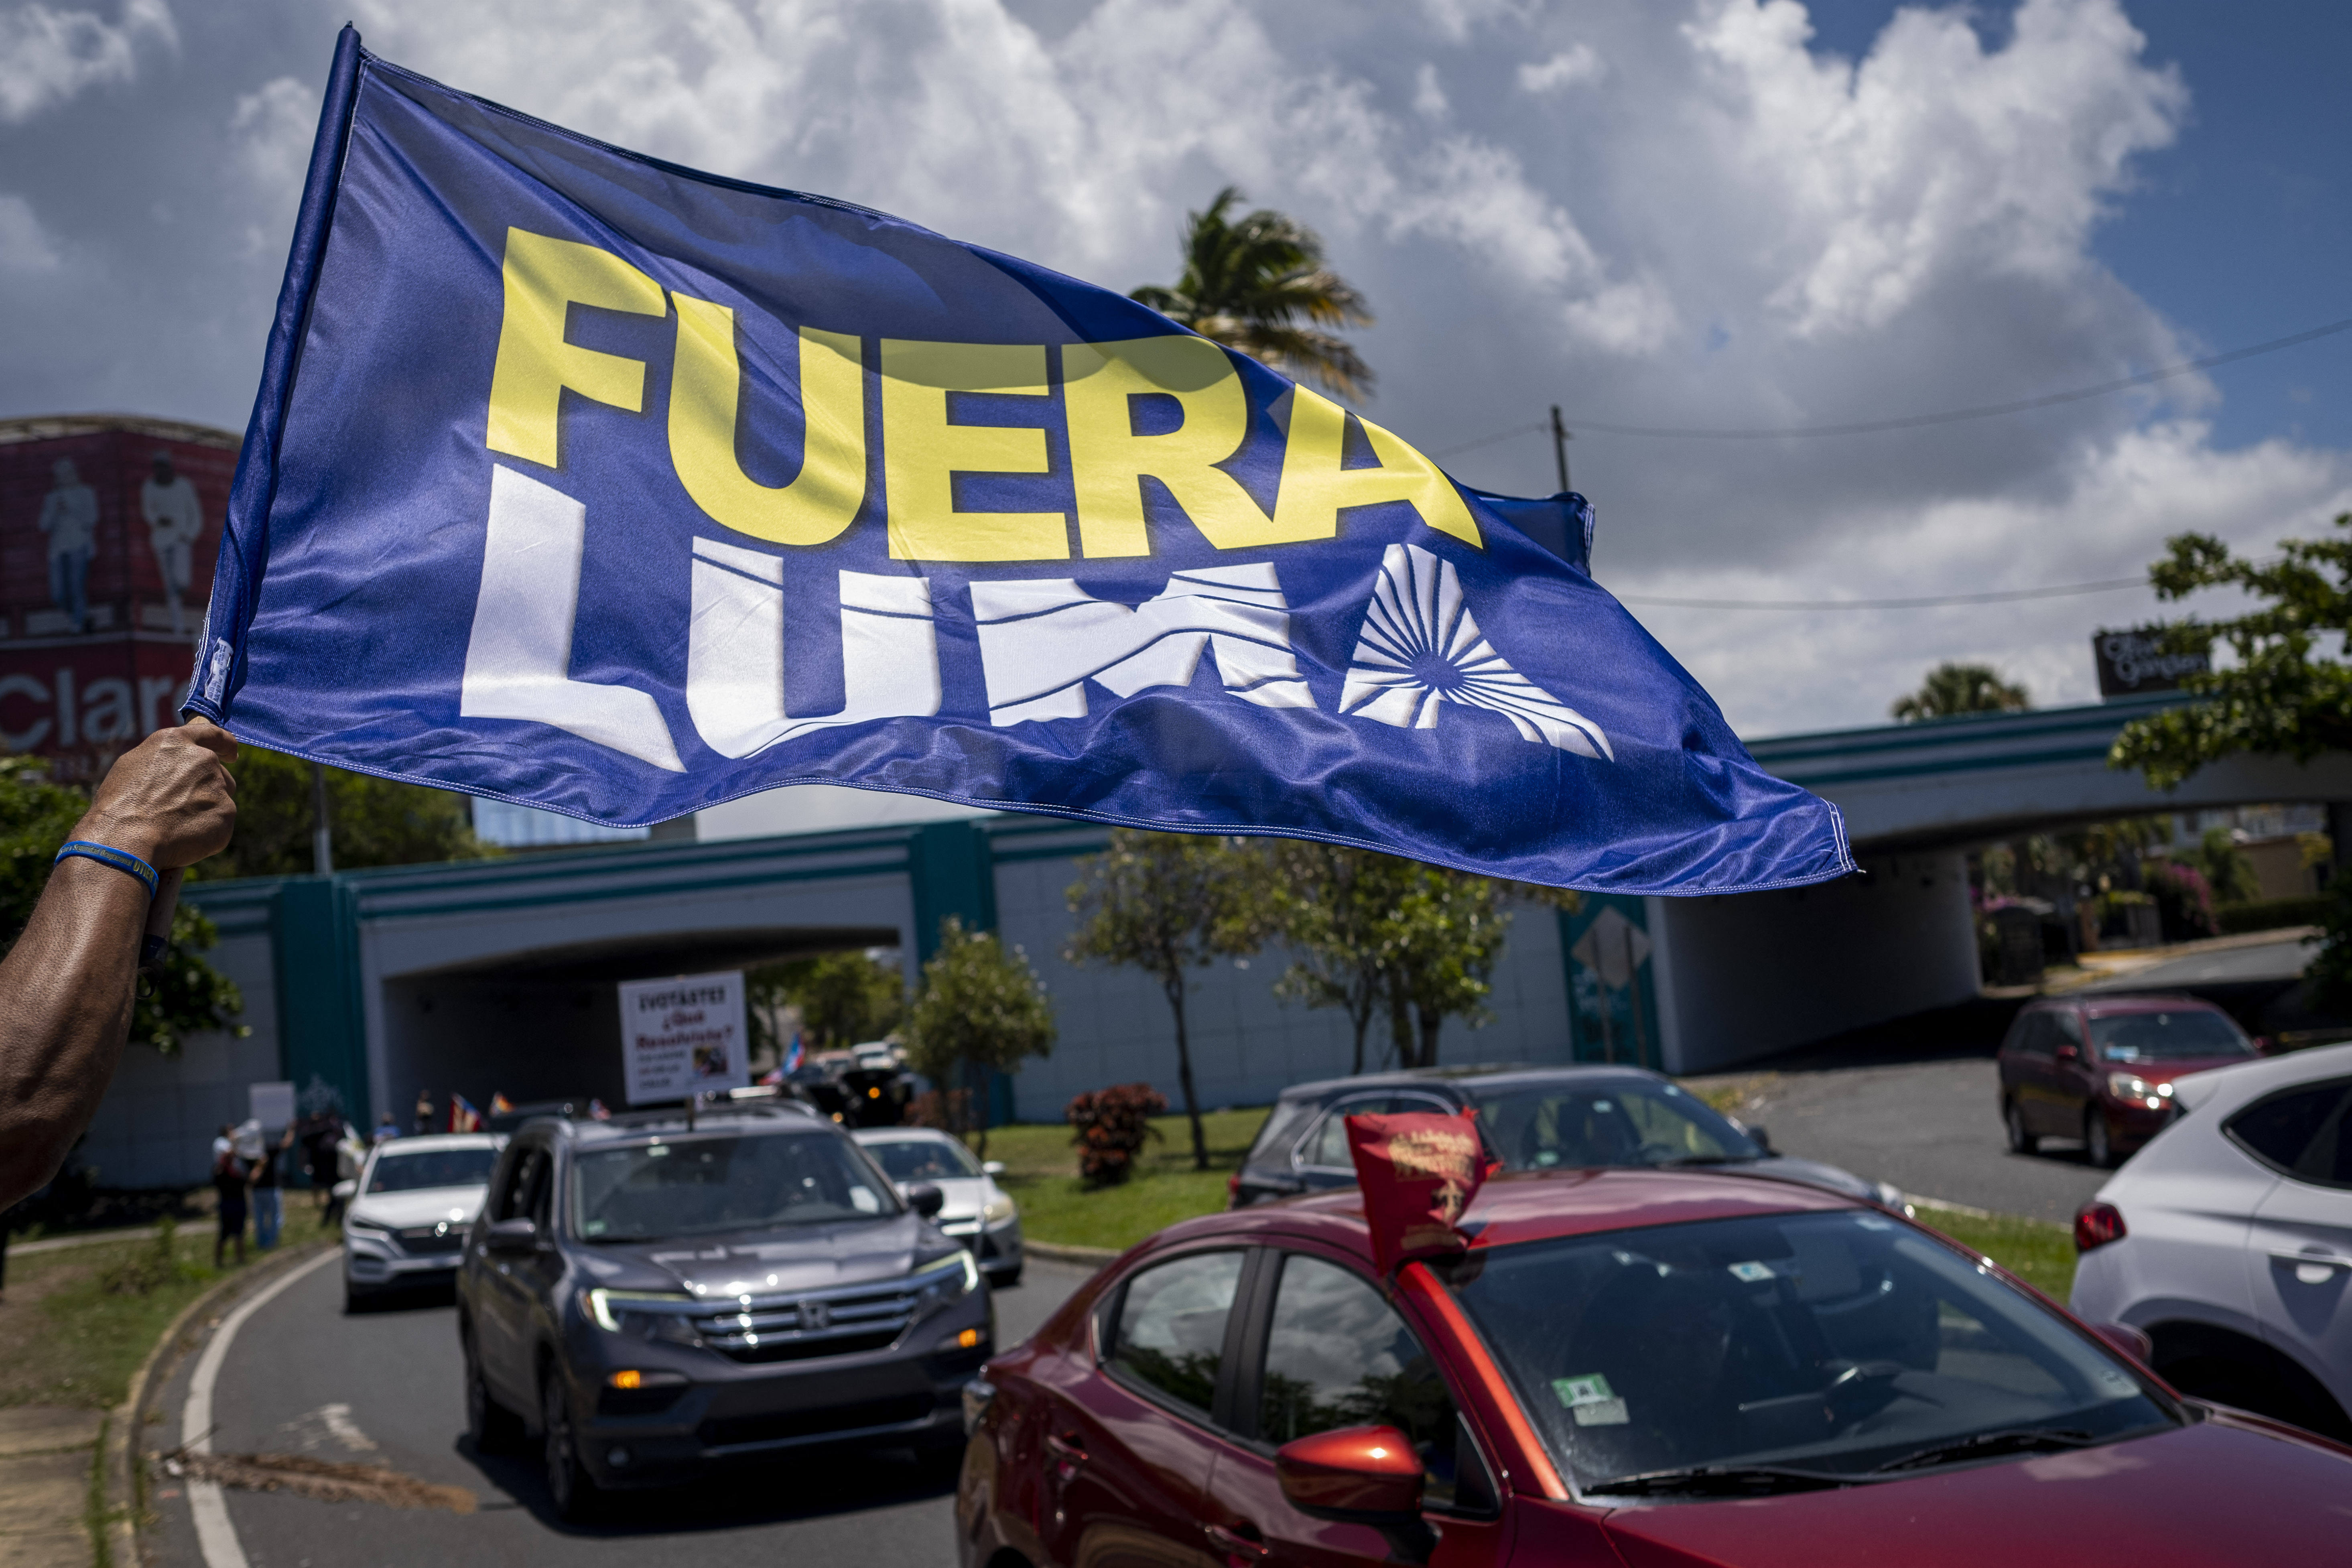 Puerto Rico Has a Once-In-A-Lifetime Chance to Build a Clean Energy Grid – but Fema Plans to Spend .4 Billion on Fossil Fuel Infrastructure Instead